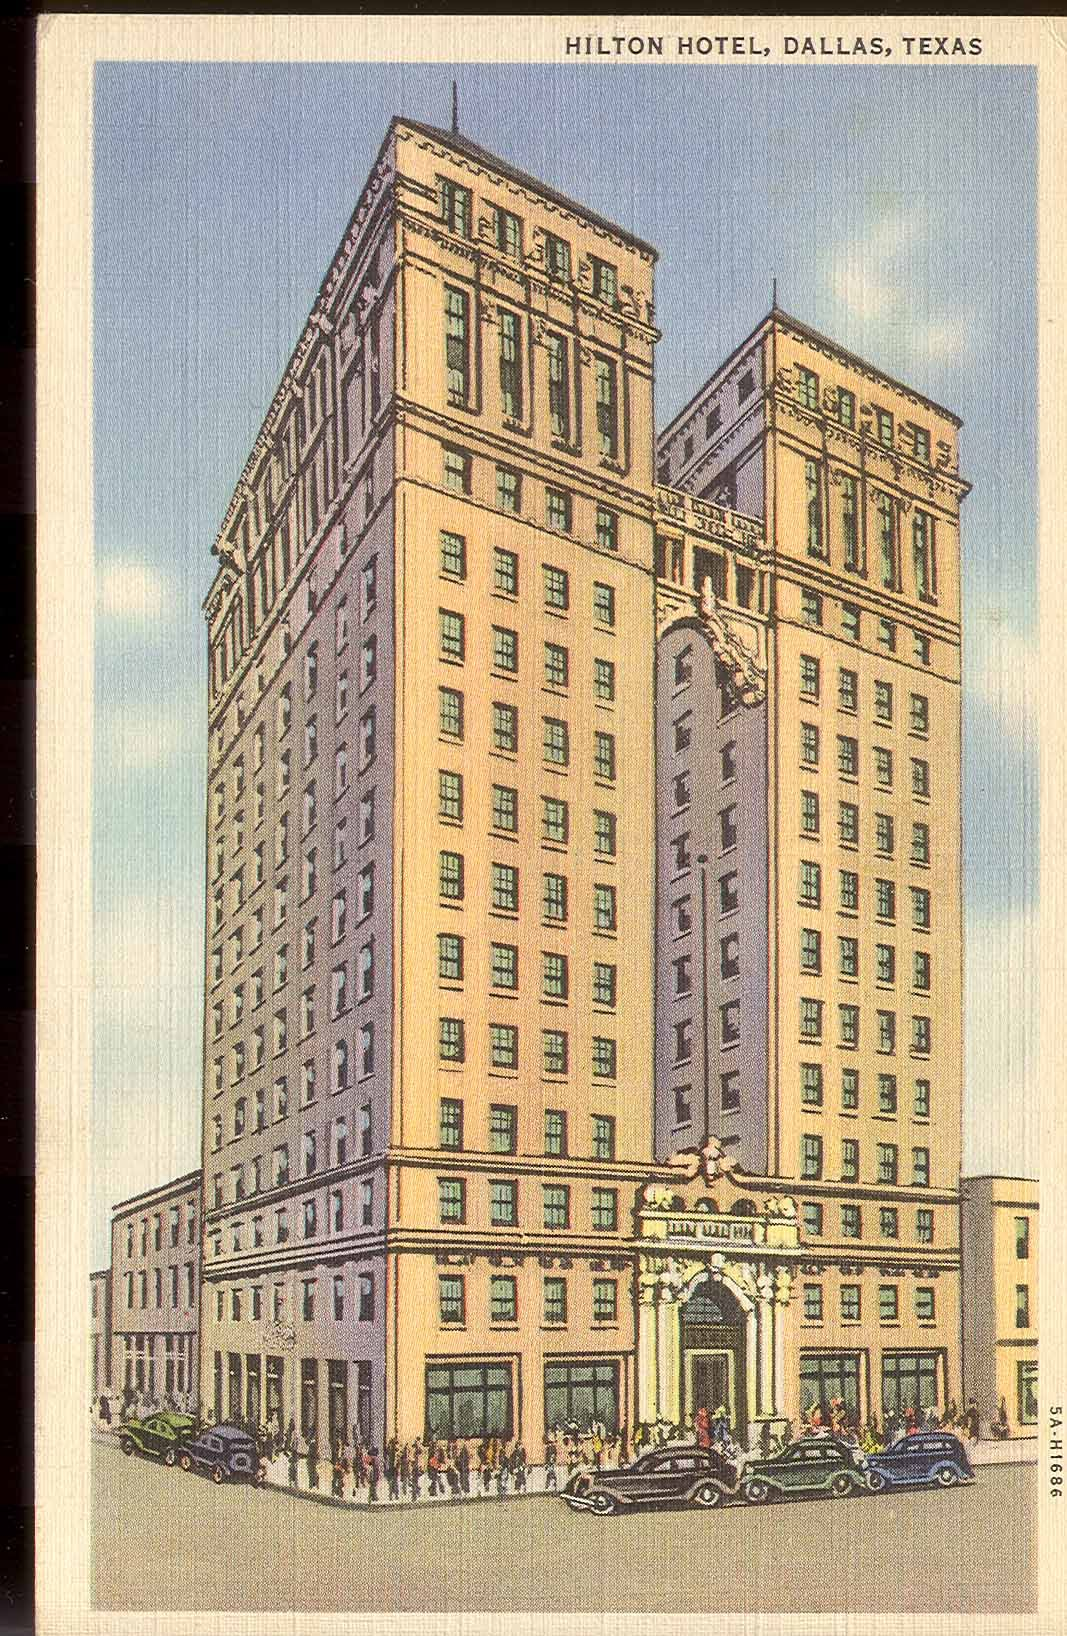 1925 conrad hilton opens the high rise dallas hilton the first 1925 conrad hilton opens the high rise dallas hilton the first hotel to carry the hilton name since air conditioning hadnt yet been invented reheart Images